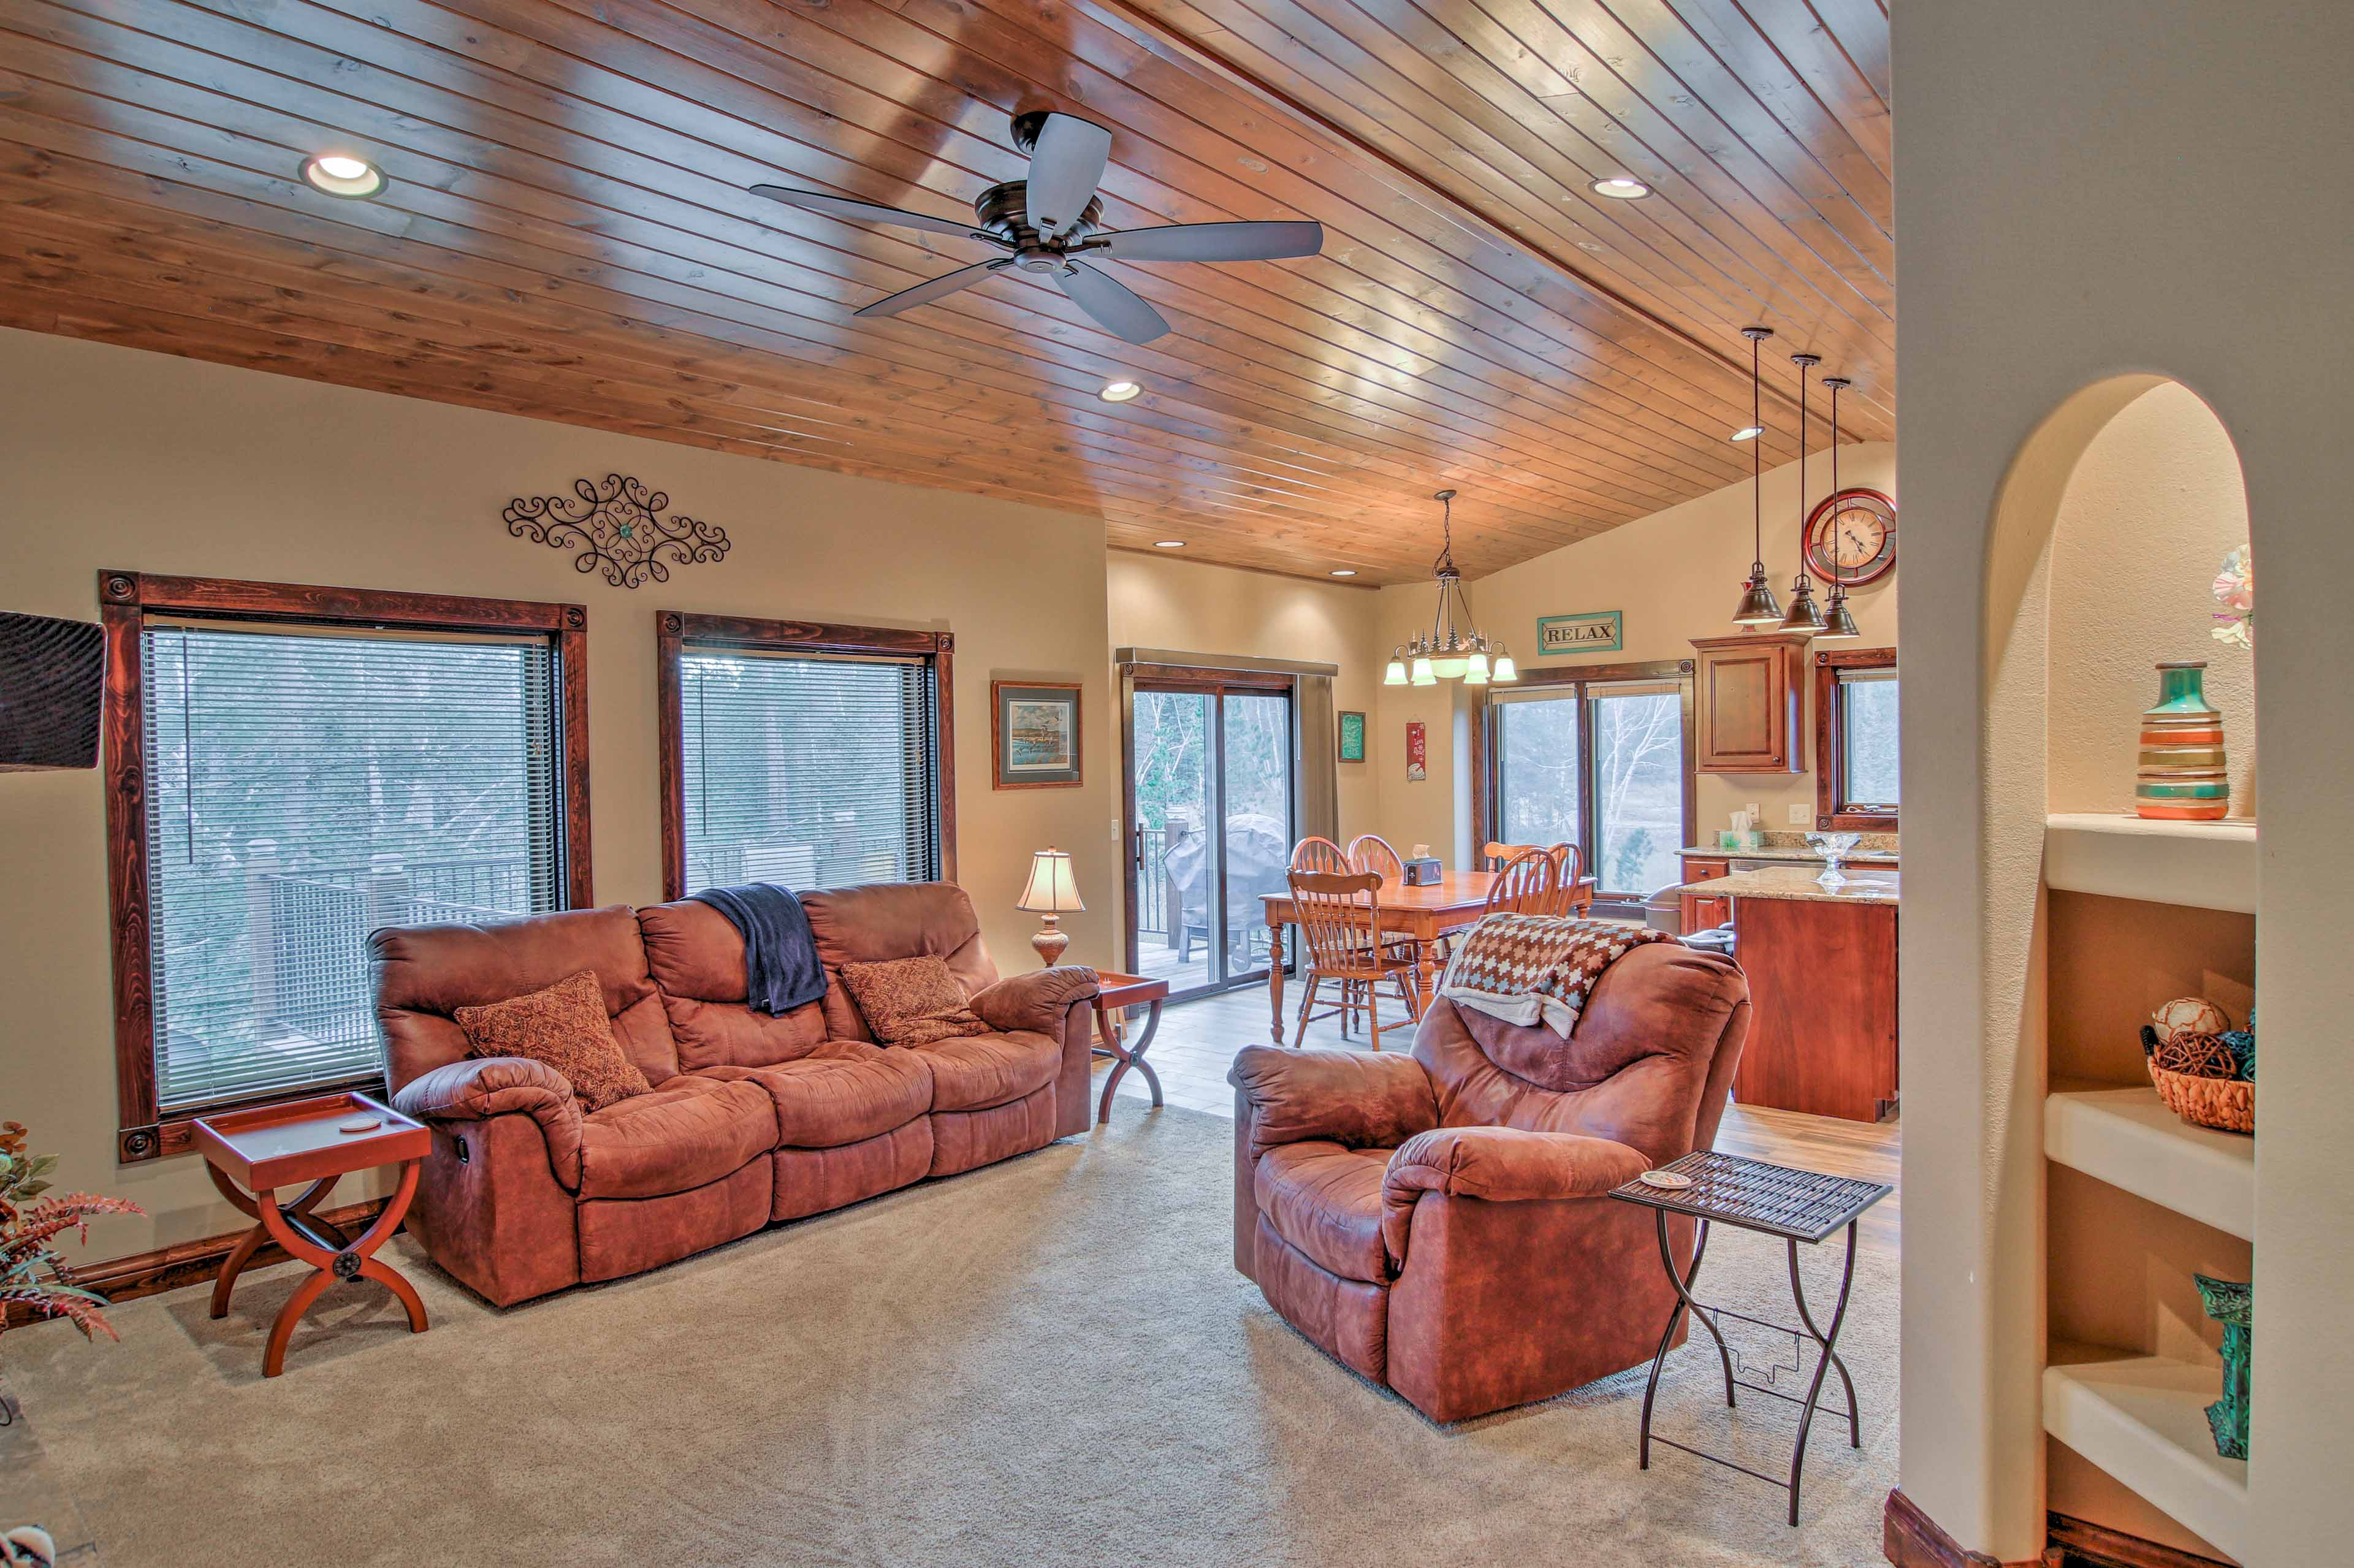 High ceilings and large windows make the open-concept floor plan feel even more inviting.